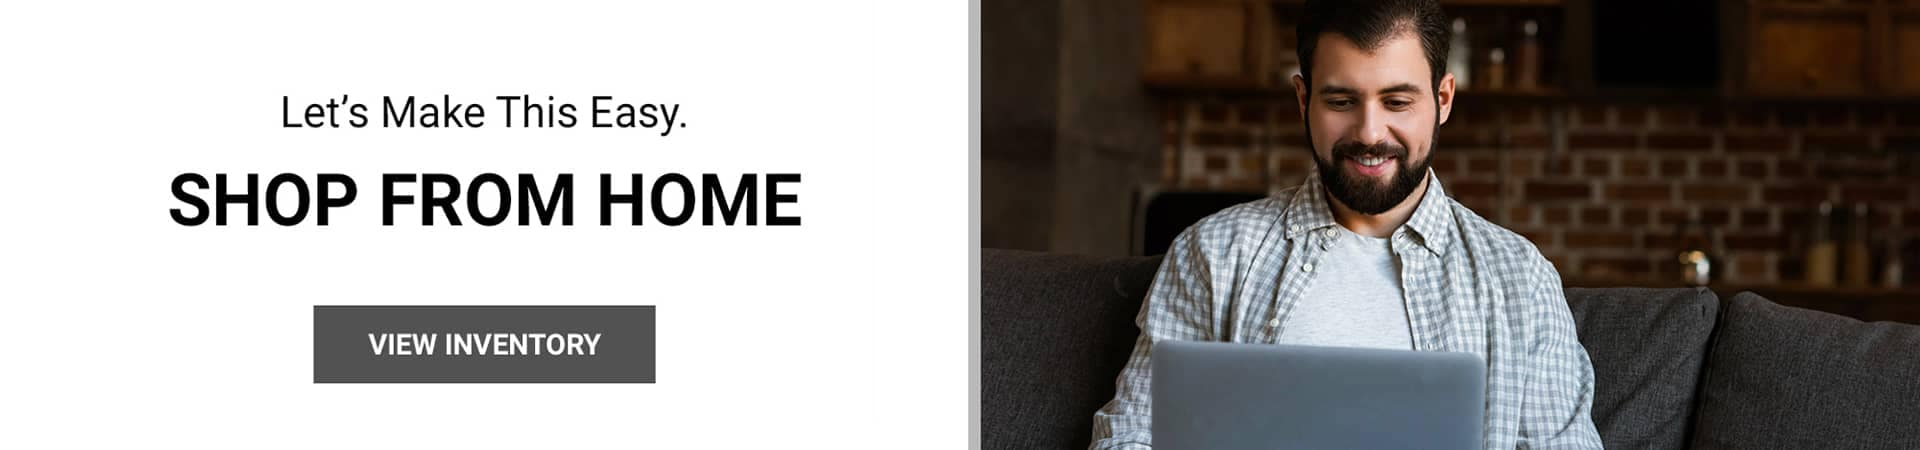 person using laptop, shop form home banner